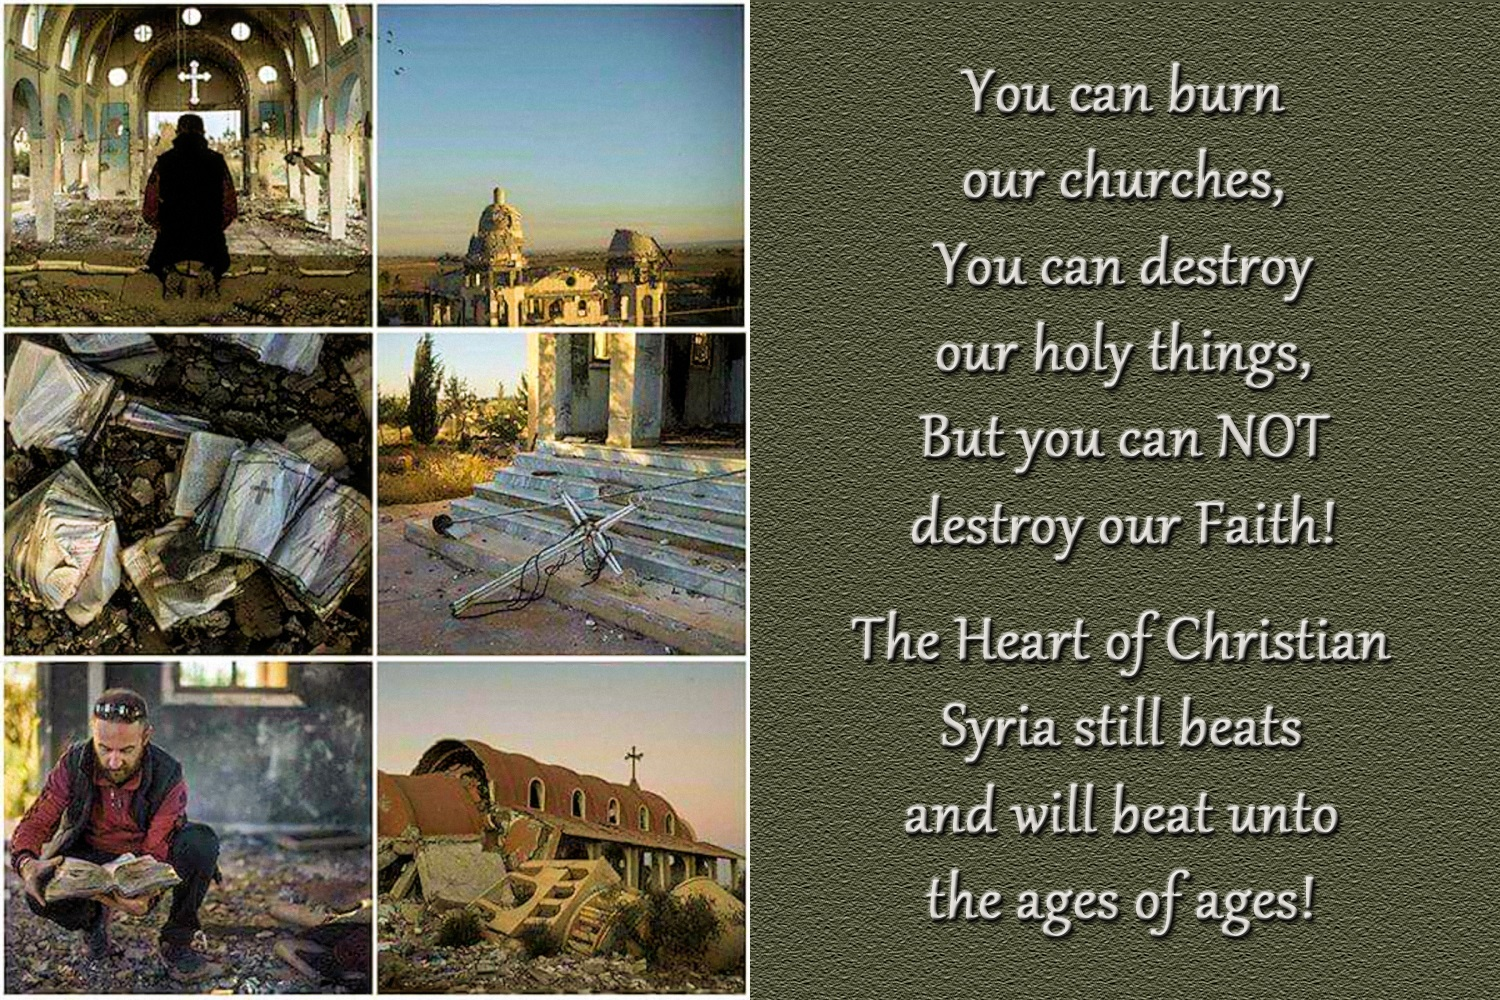 00 syria you can burn and destroy our churches 010616